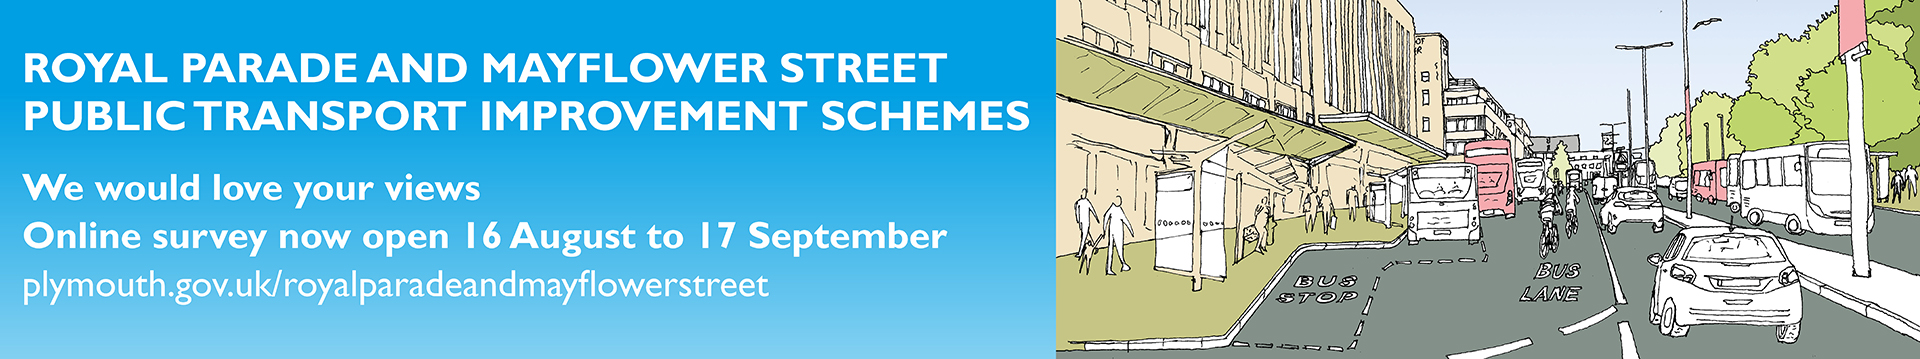 Royal Parade and Mayflower Street Public Consultation Banner